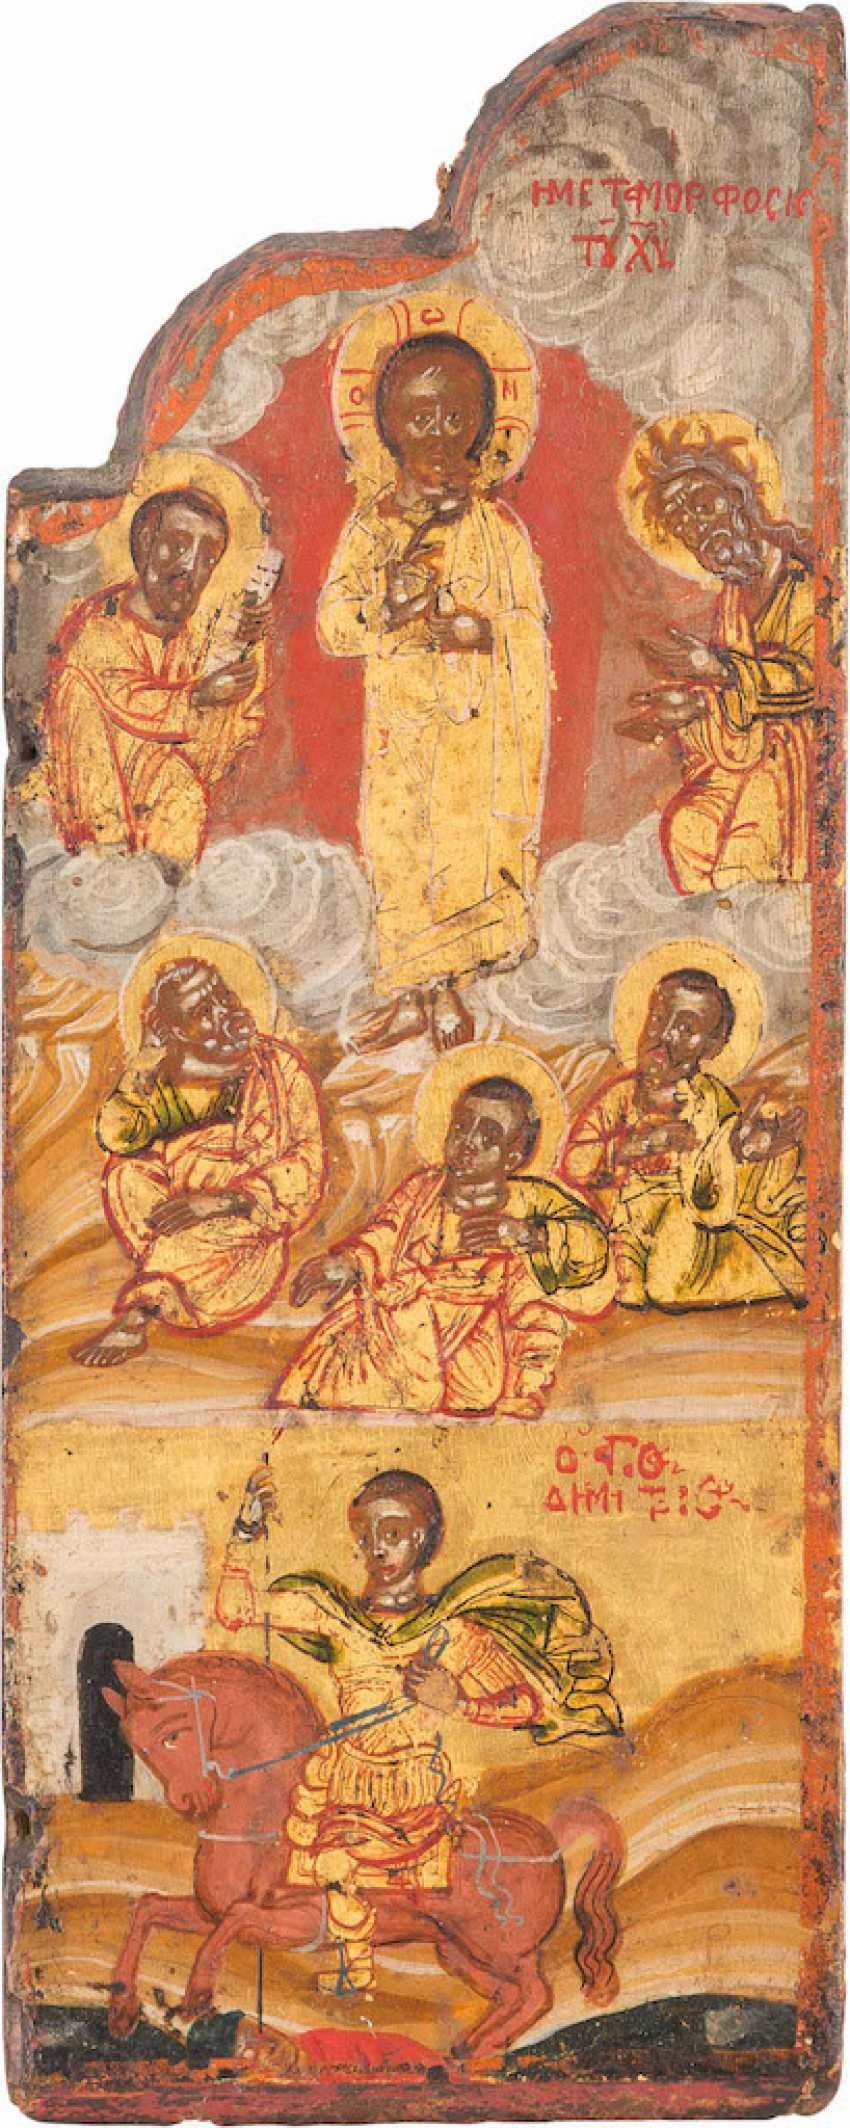 A SMALL ICON, AND WINGS OF A TRIPTYCH WITH THE TRANSFIGURATION OF CHRIST - photo 2